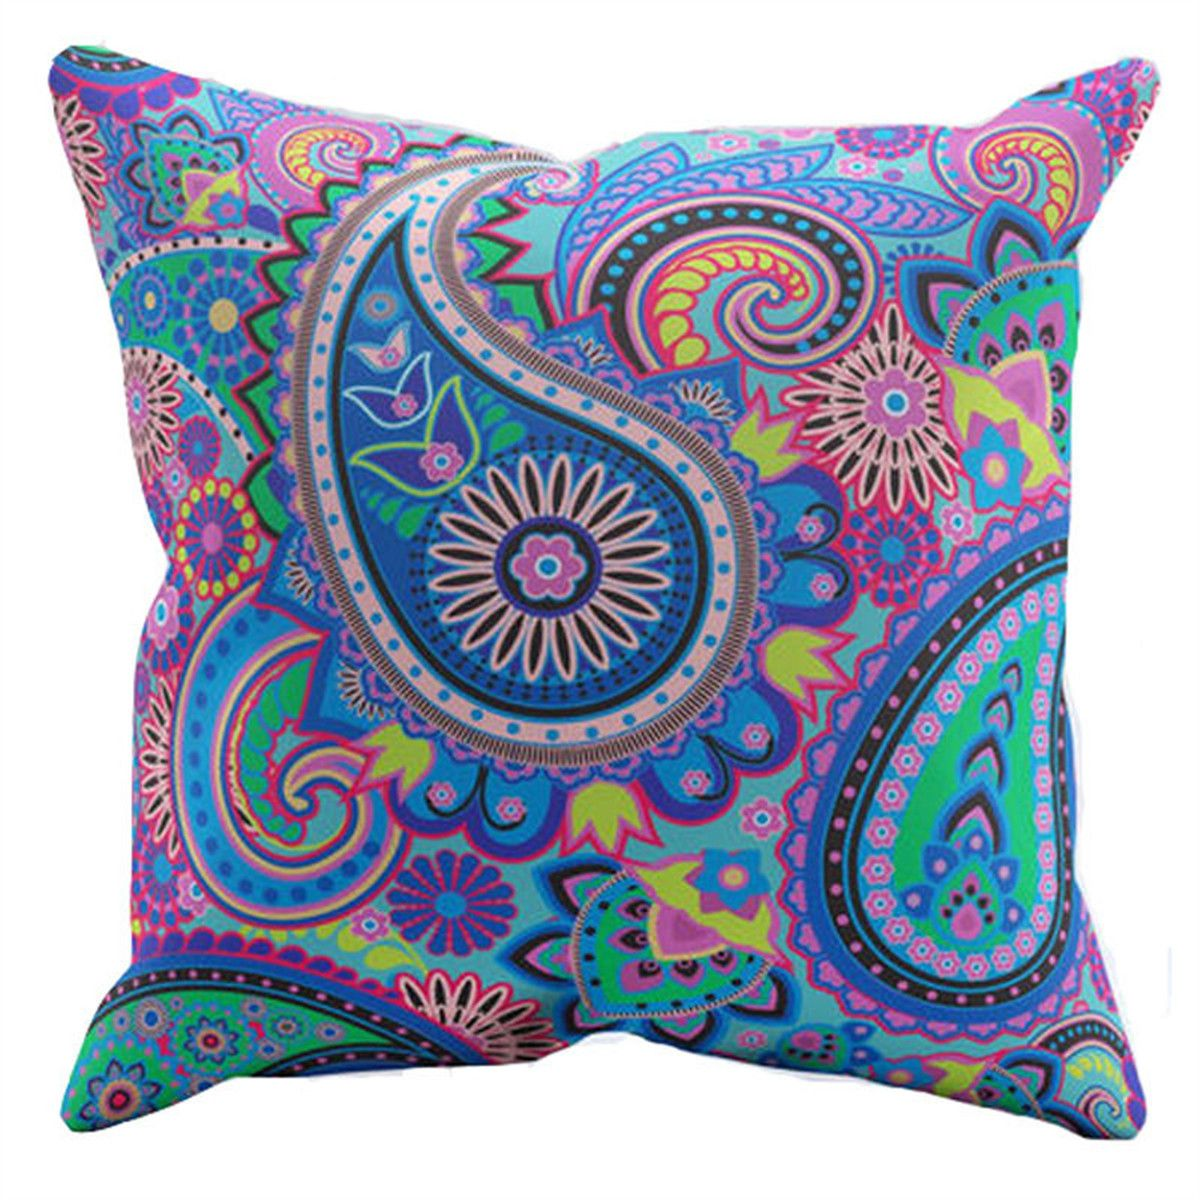 Decorative Pillows & Custom Pillow Covers for Home